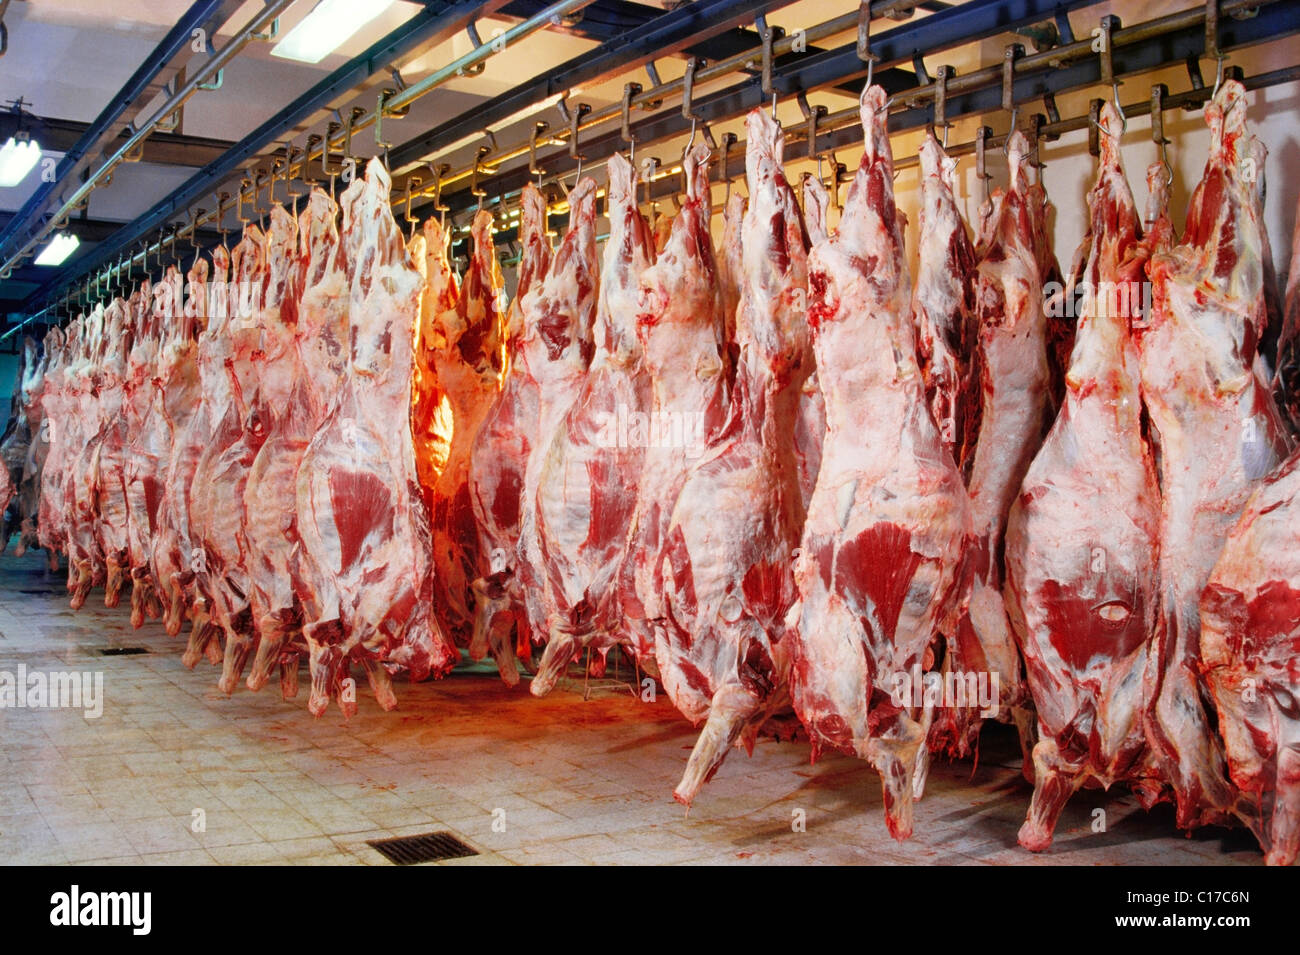 HMA-61314 : Slaughter house ; India - Stock Image